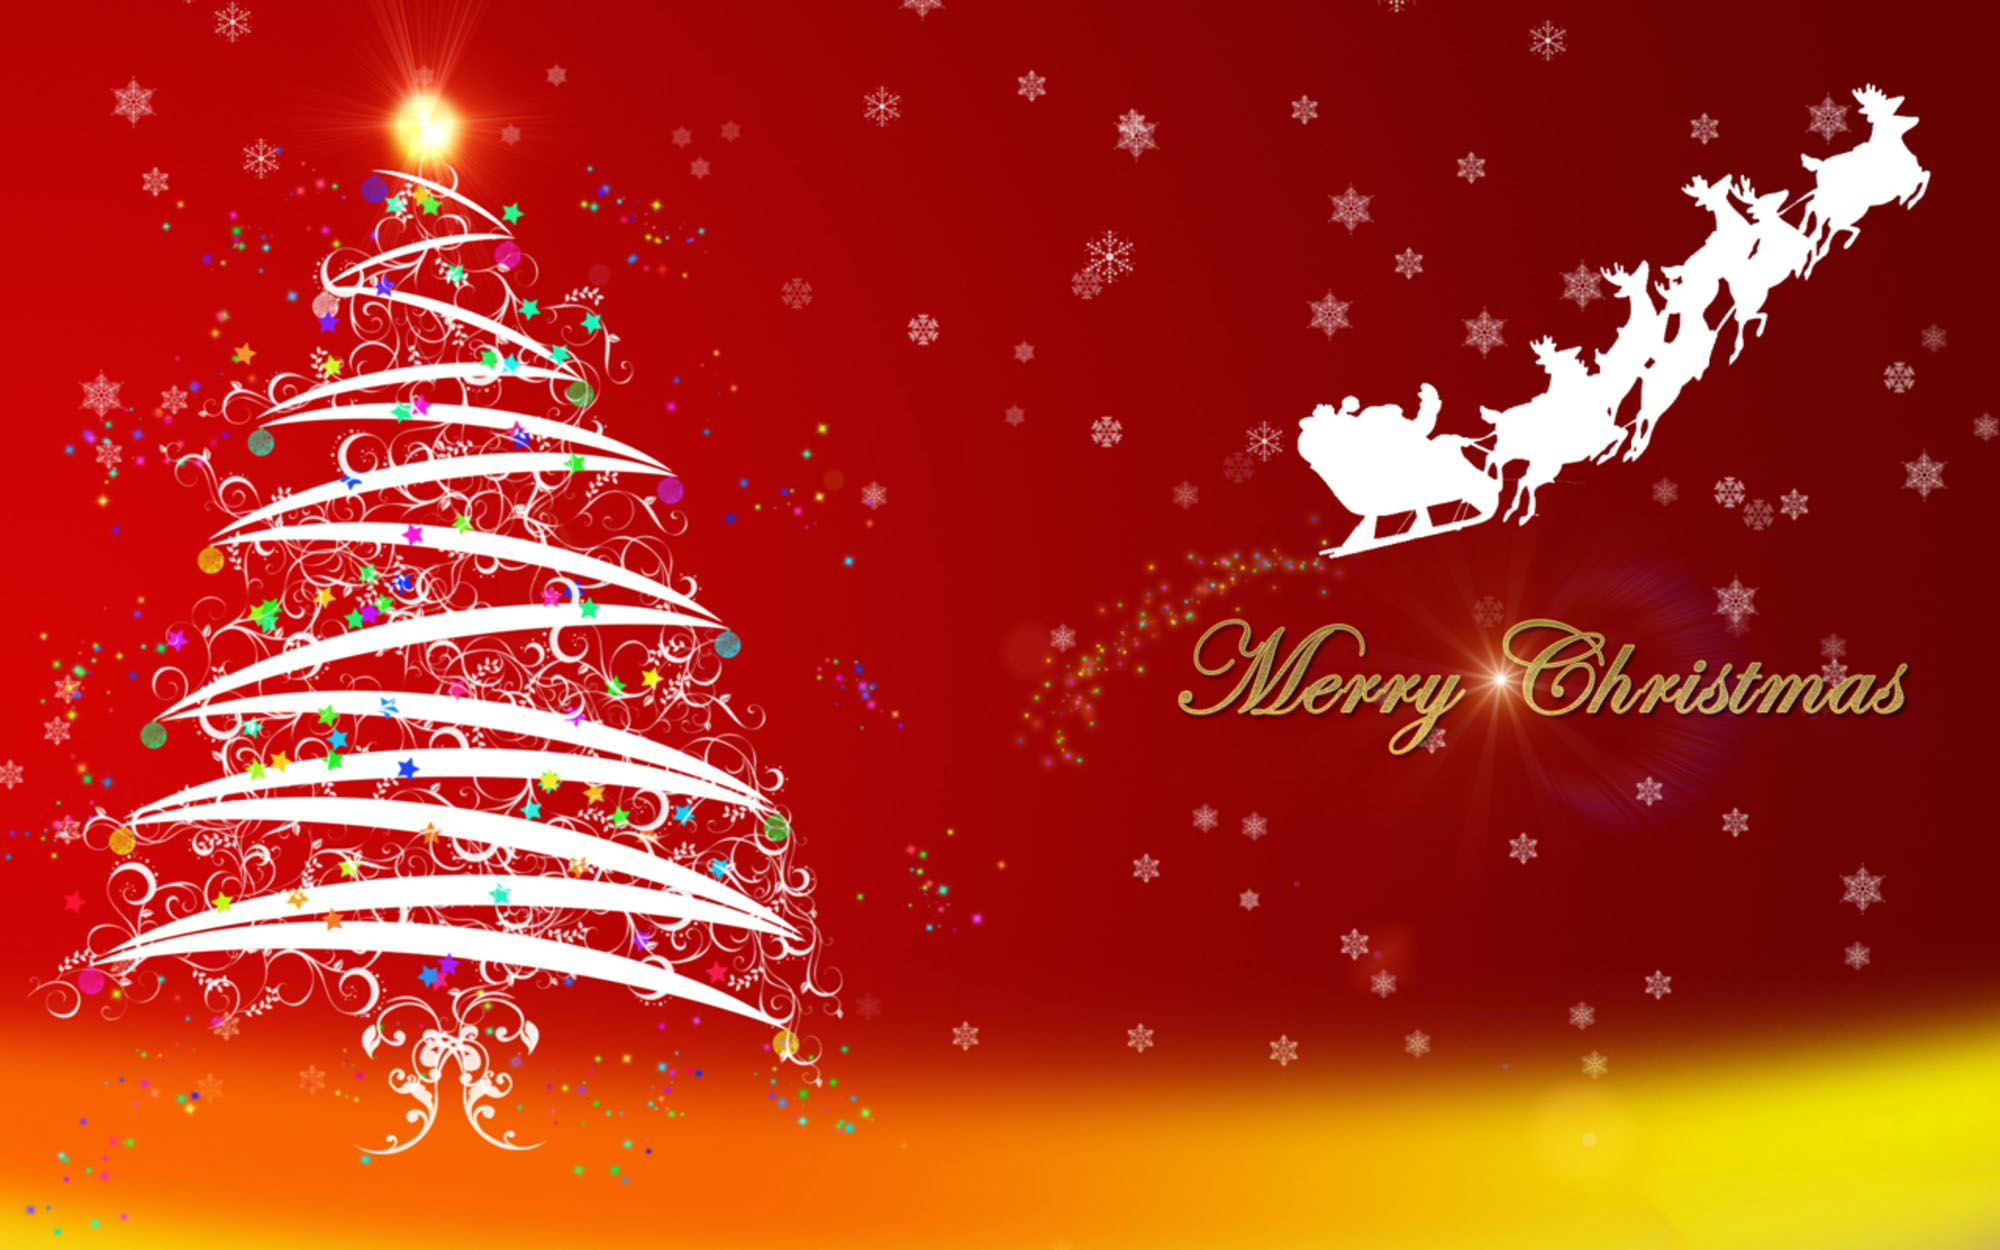 Happy Merry Christmas Greetings Wishes Rein Deer Wallpaper